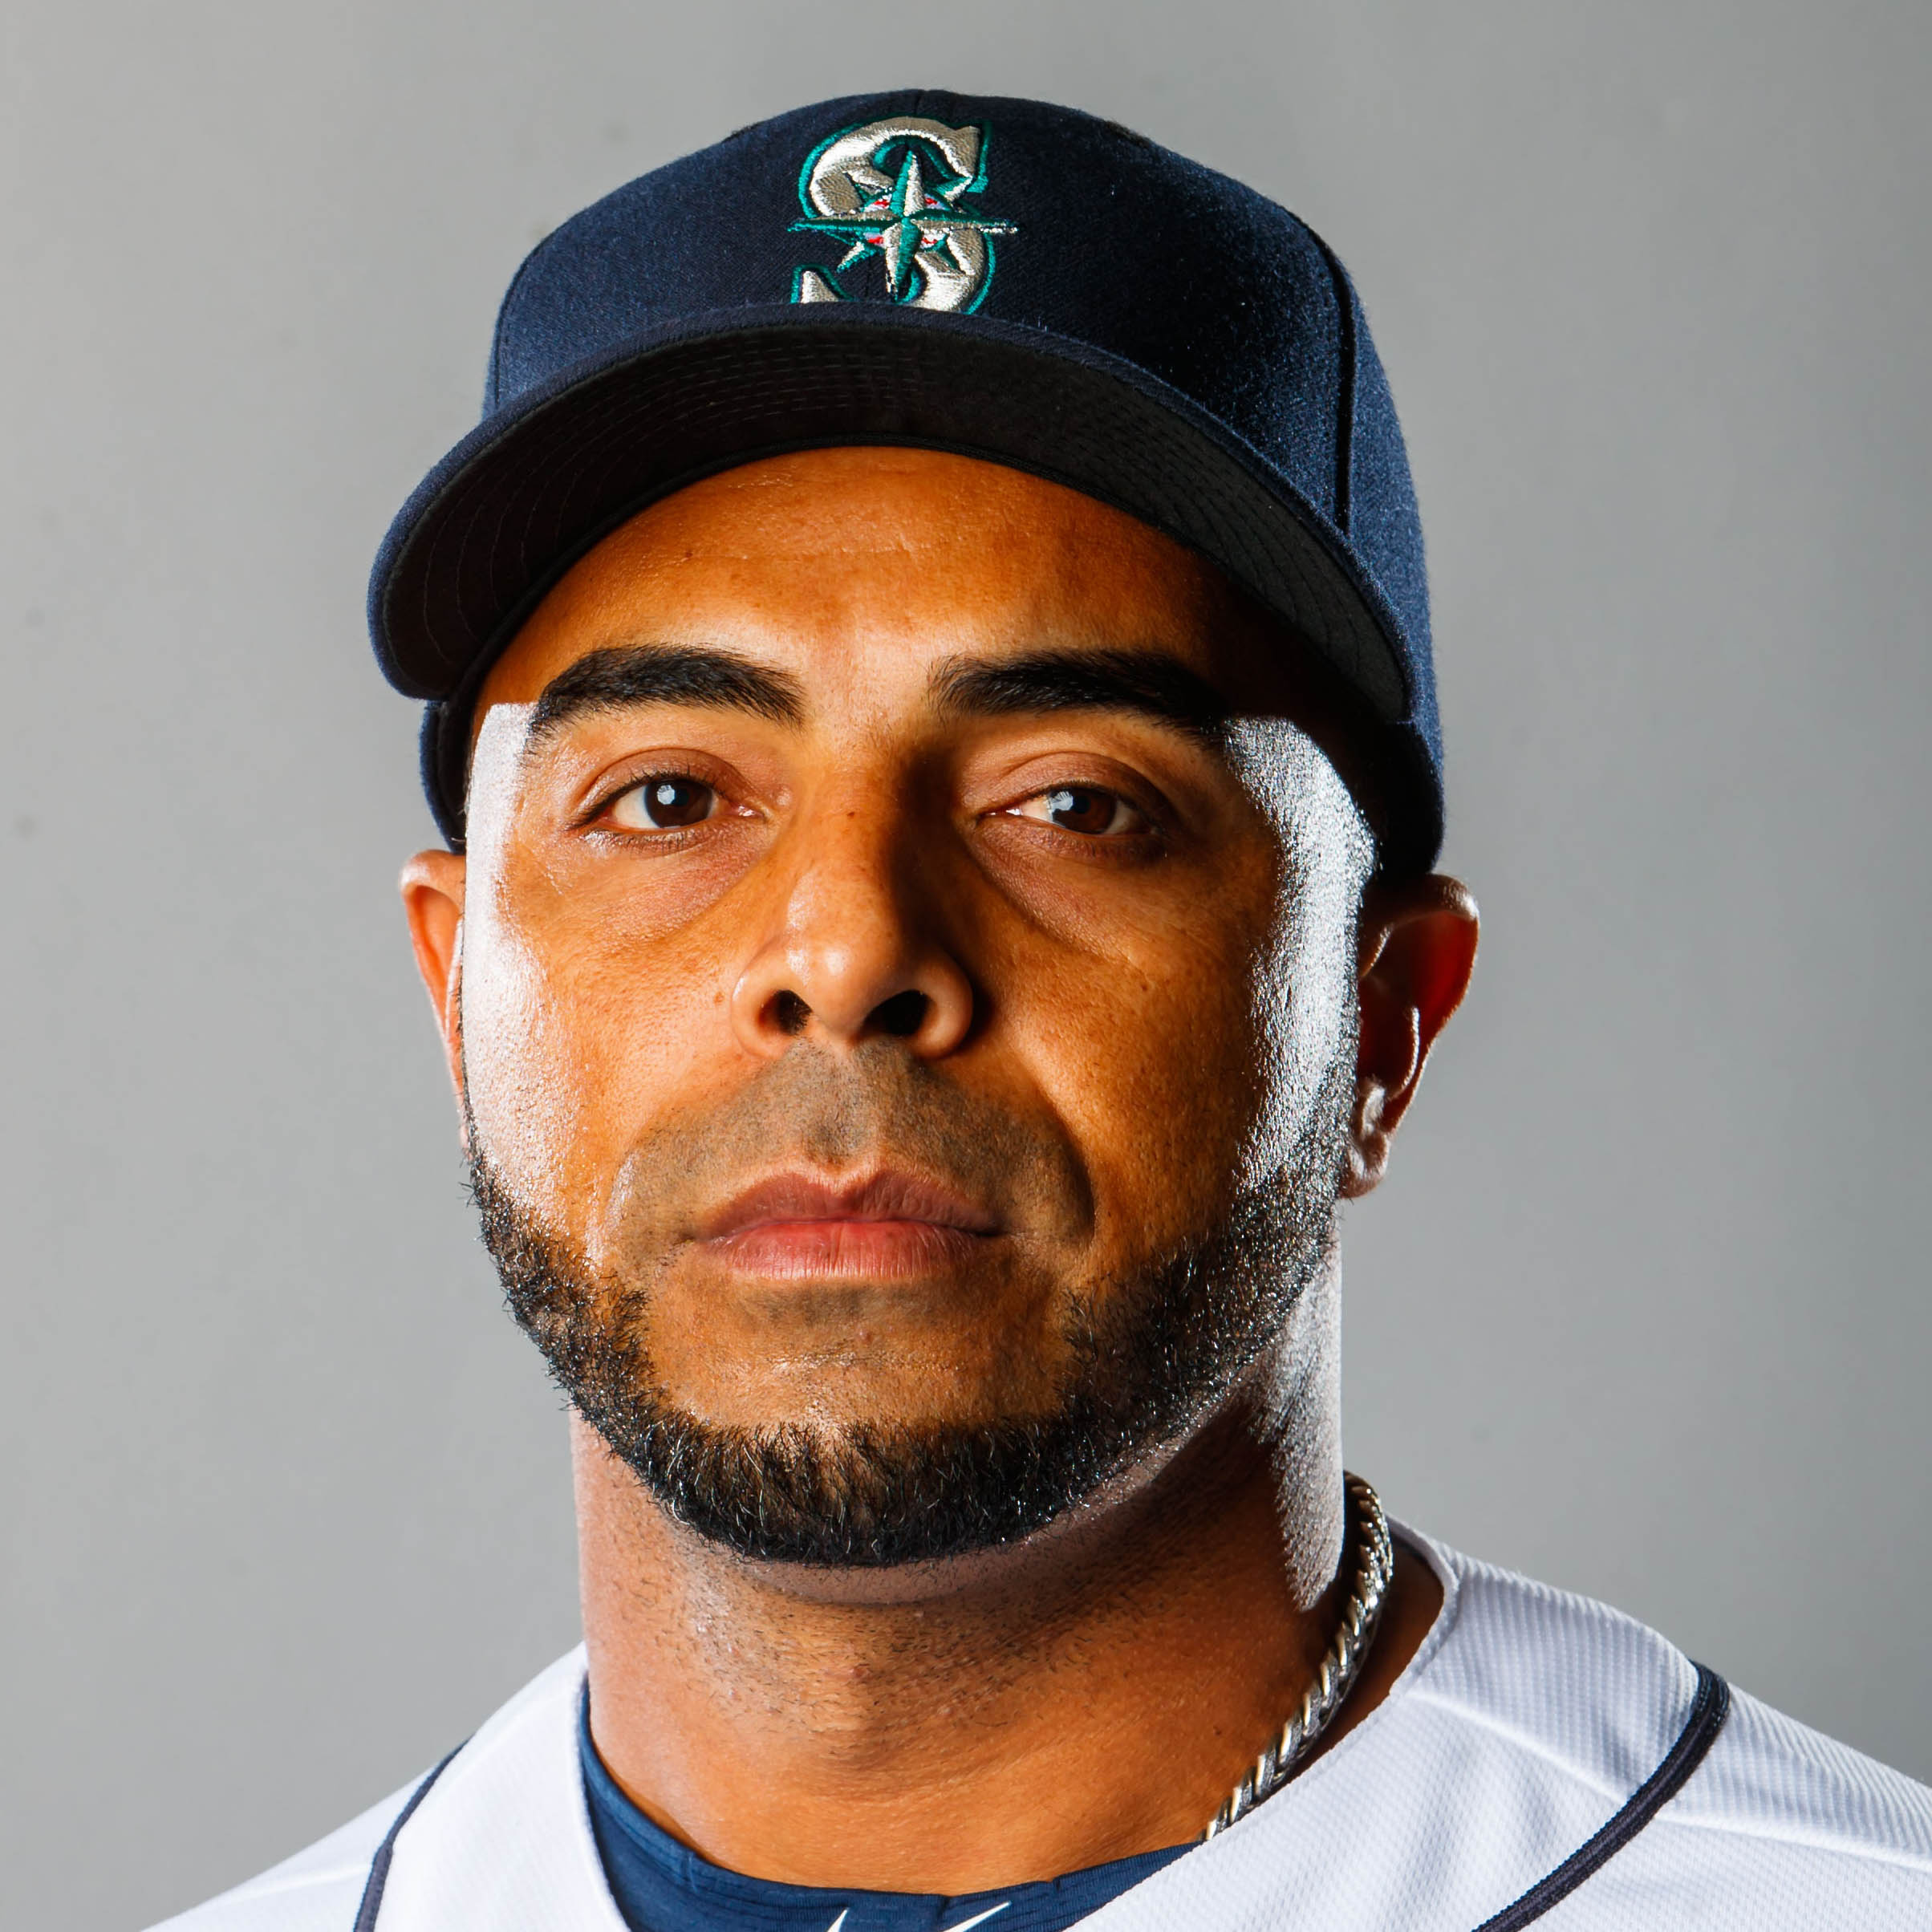 Nelson Cruz (R) Headshot